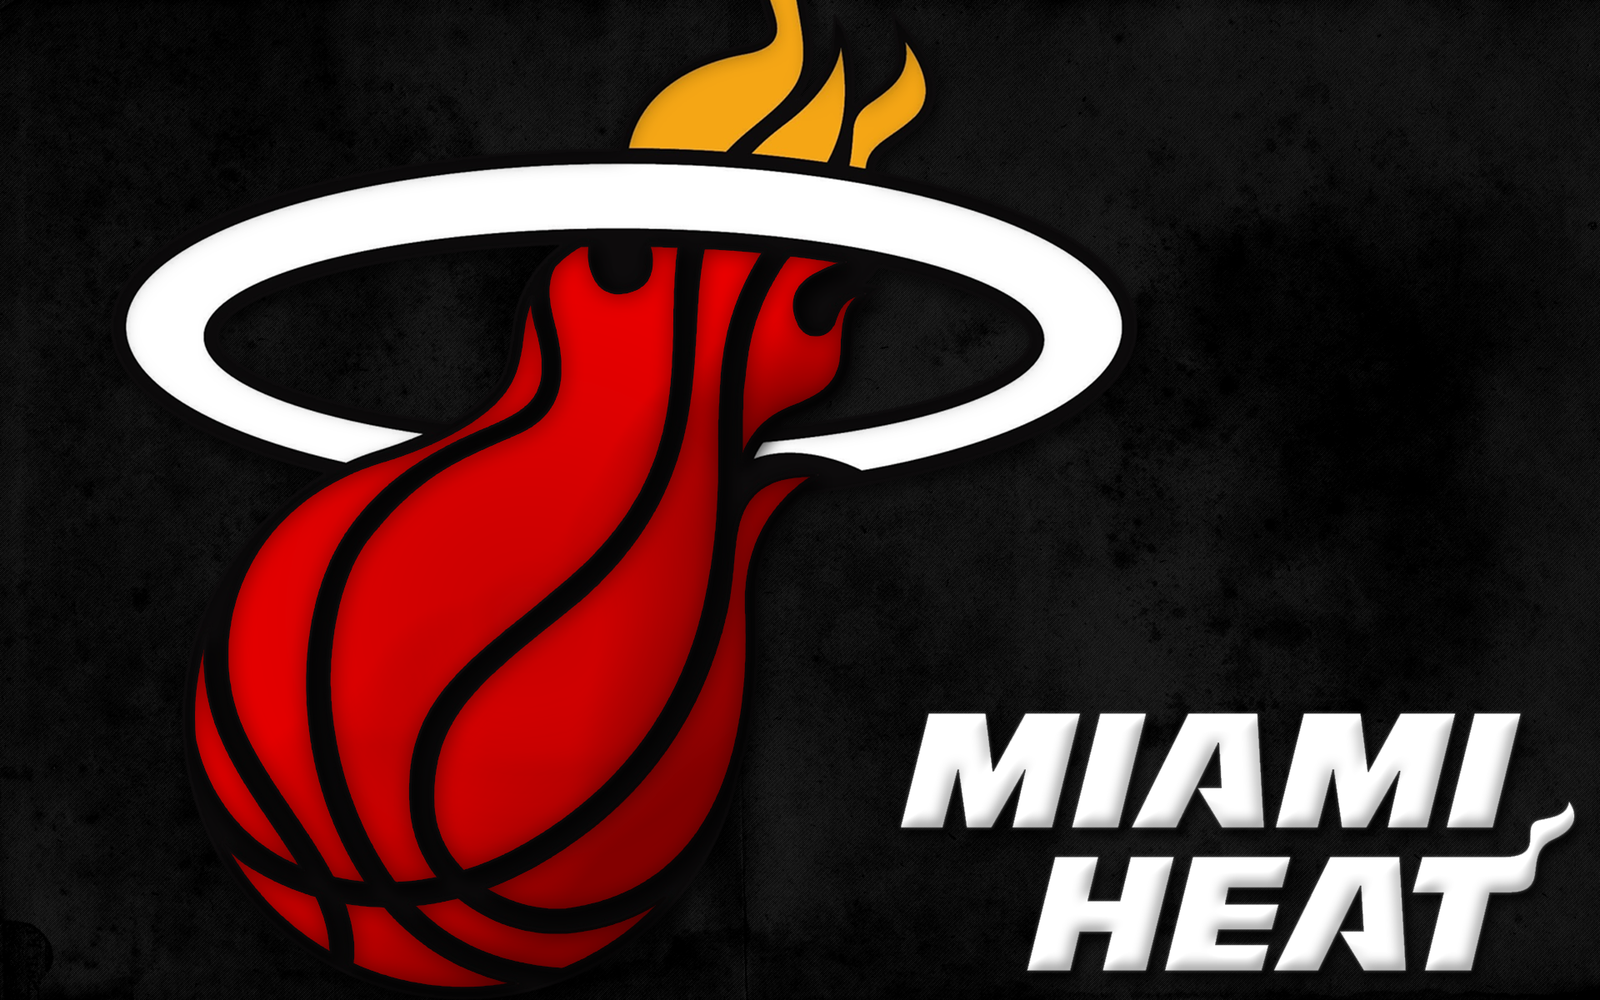 Miami Heat by lucasitodesign 1600x1000